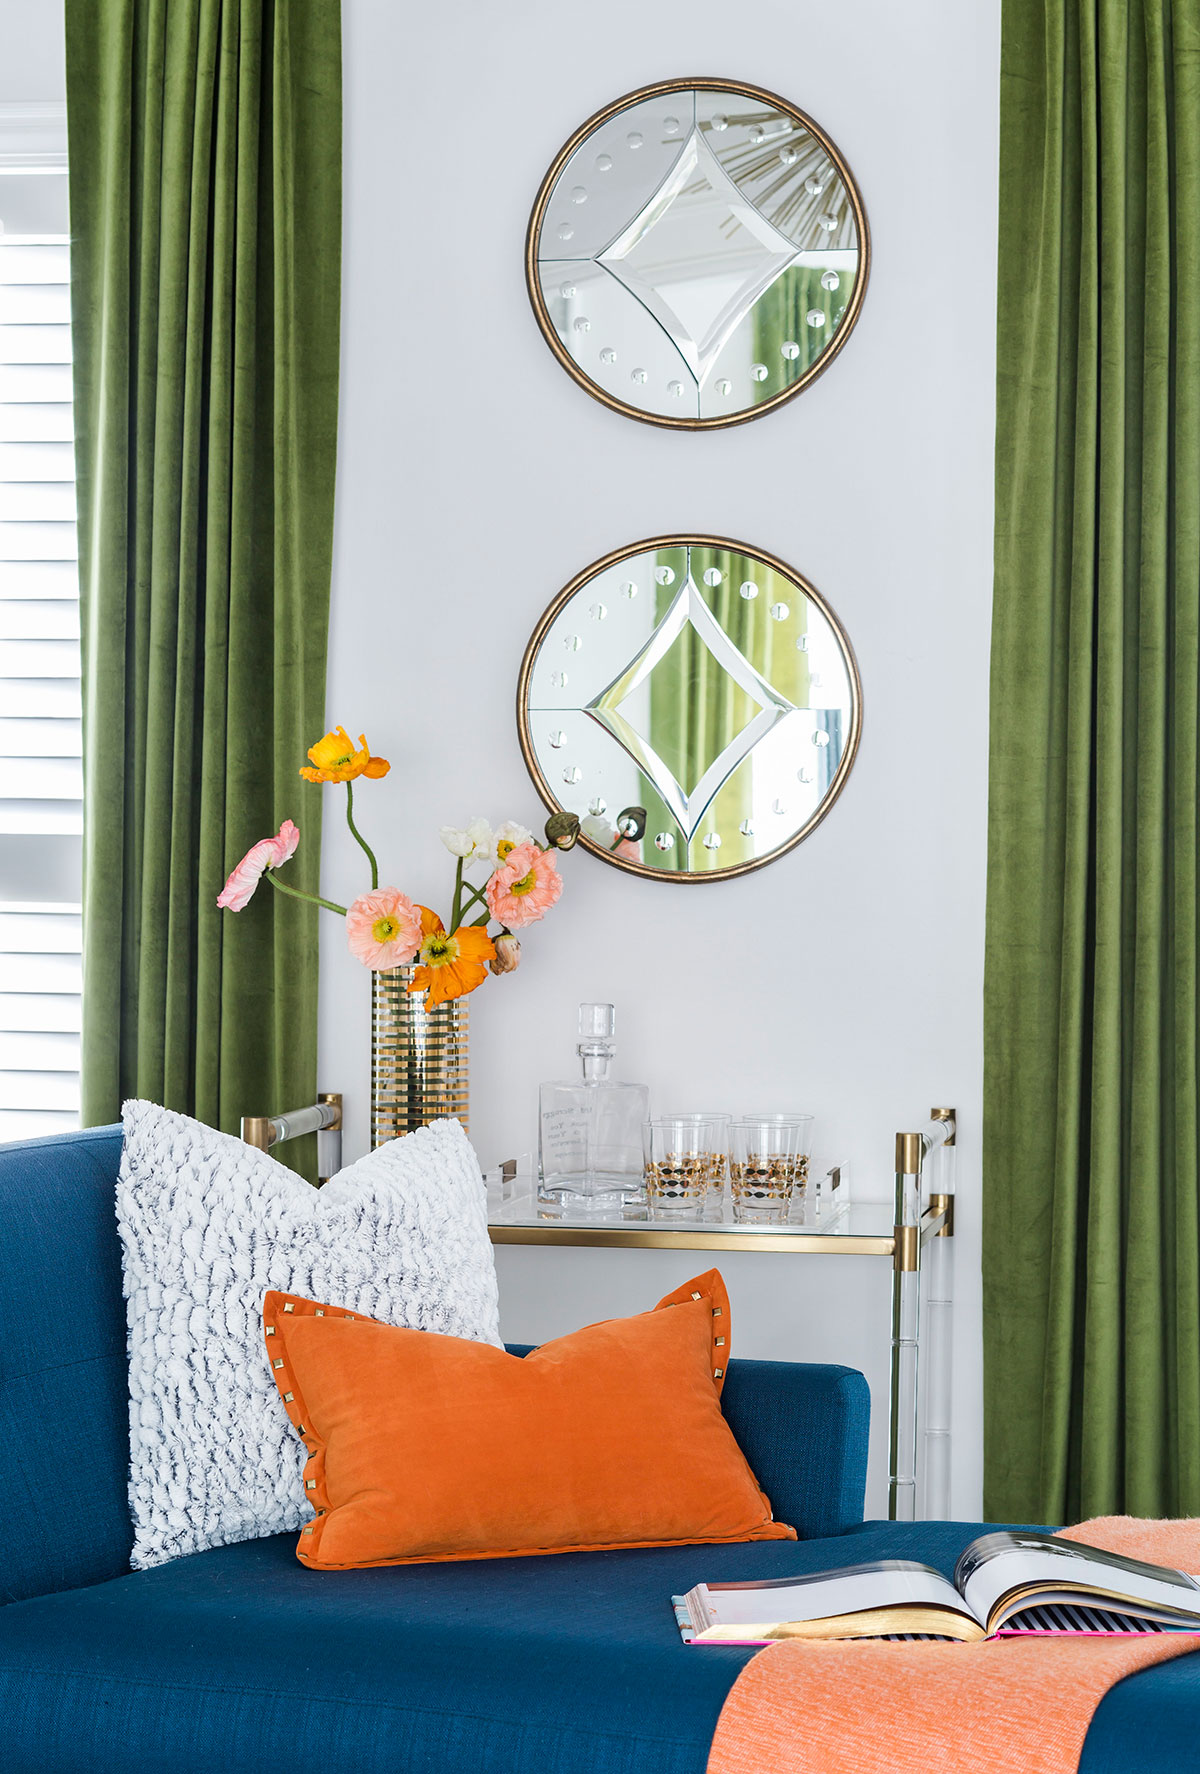 Round mirrors above bar cart in sitting room